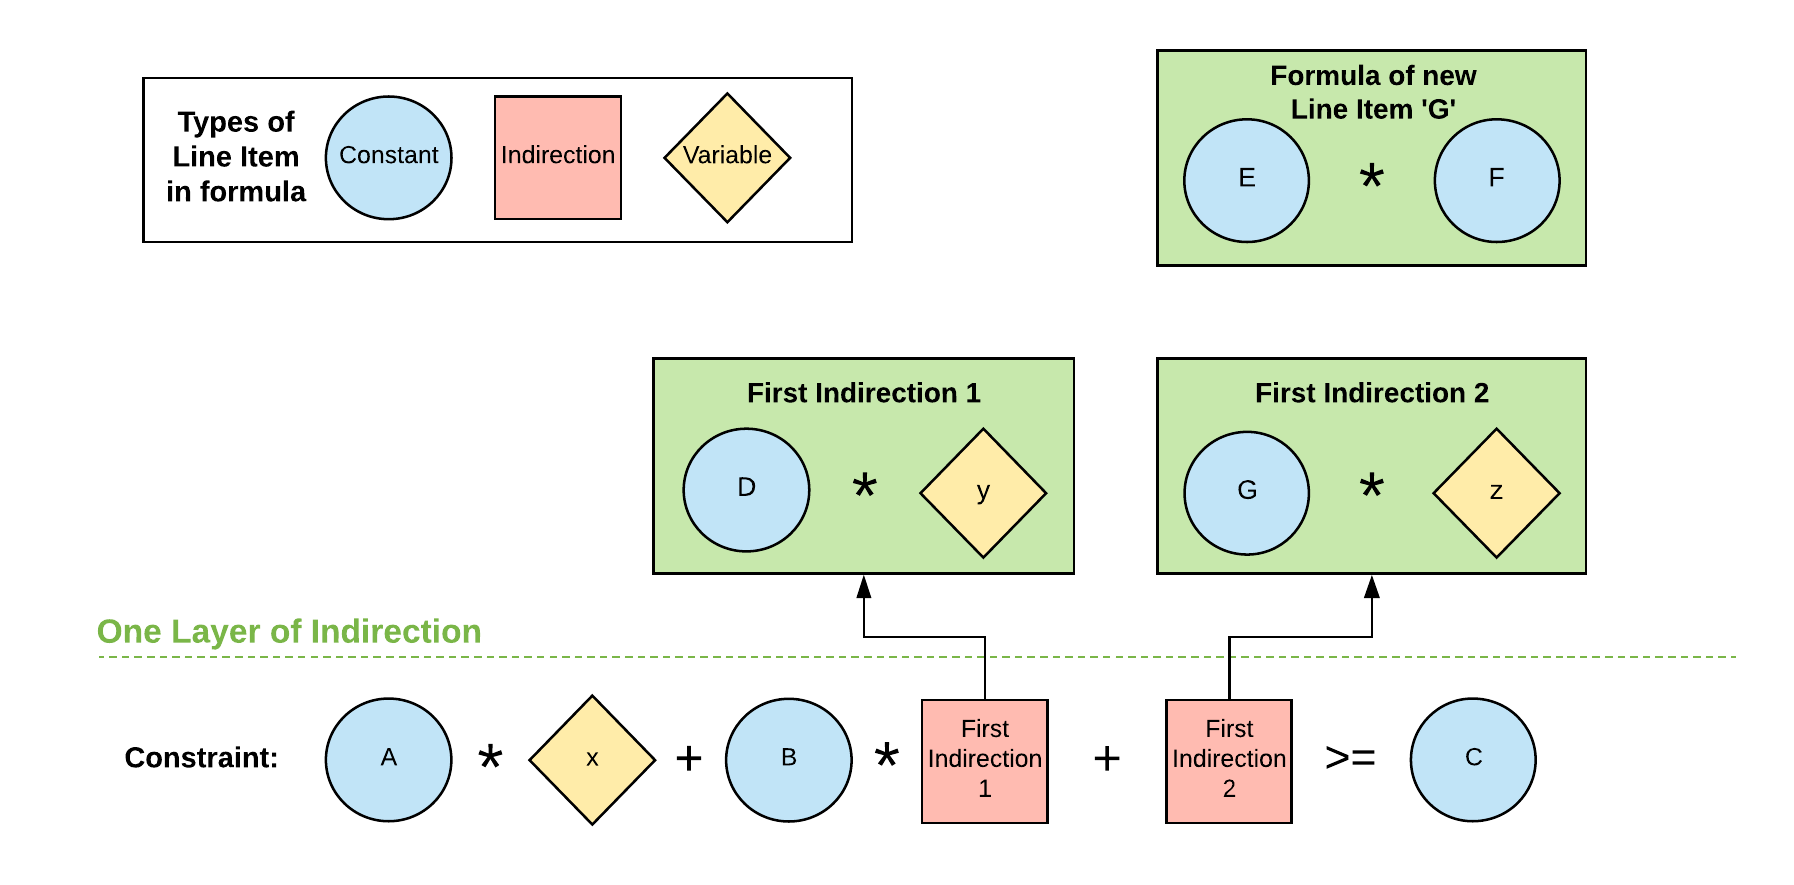 A revised version of the earlier chart. All elements that previously interacted with the variable with two levels of indirection are now part of a formula in a new line item. This new line item has been combined directly with the variable, thereby avoiding the second level of indirection.